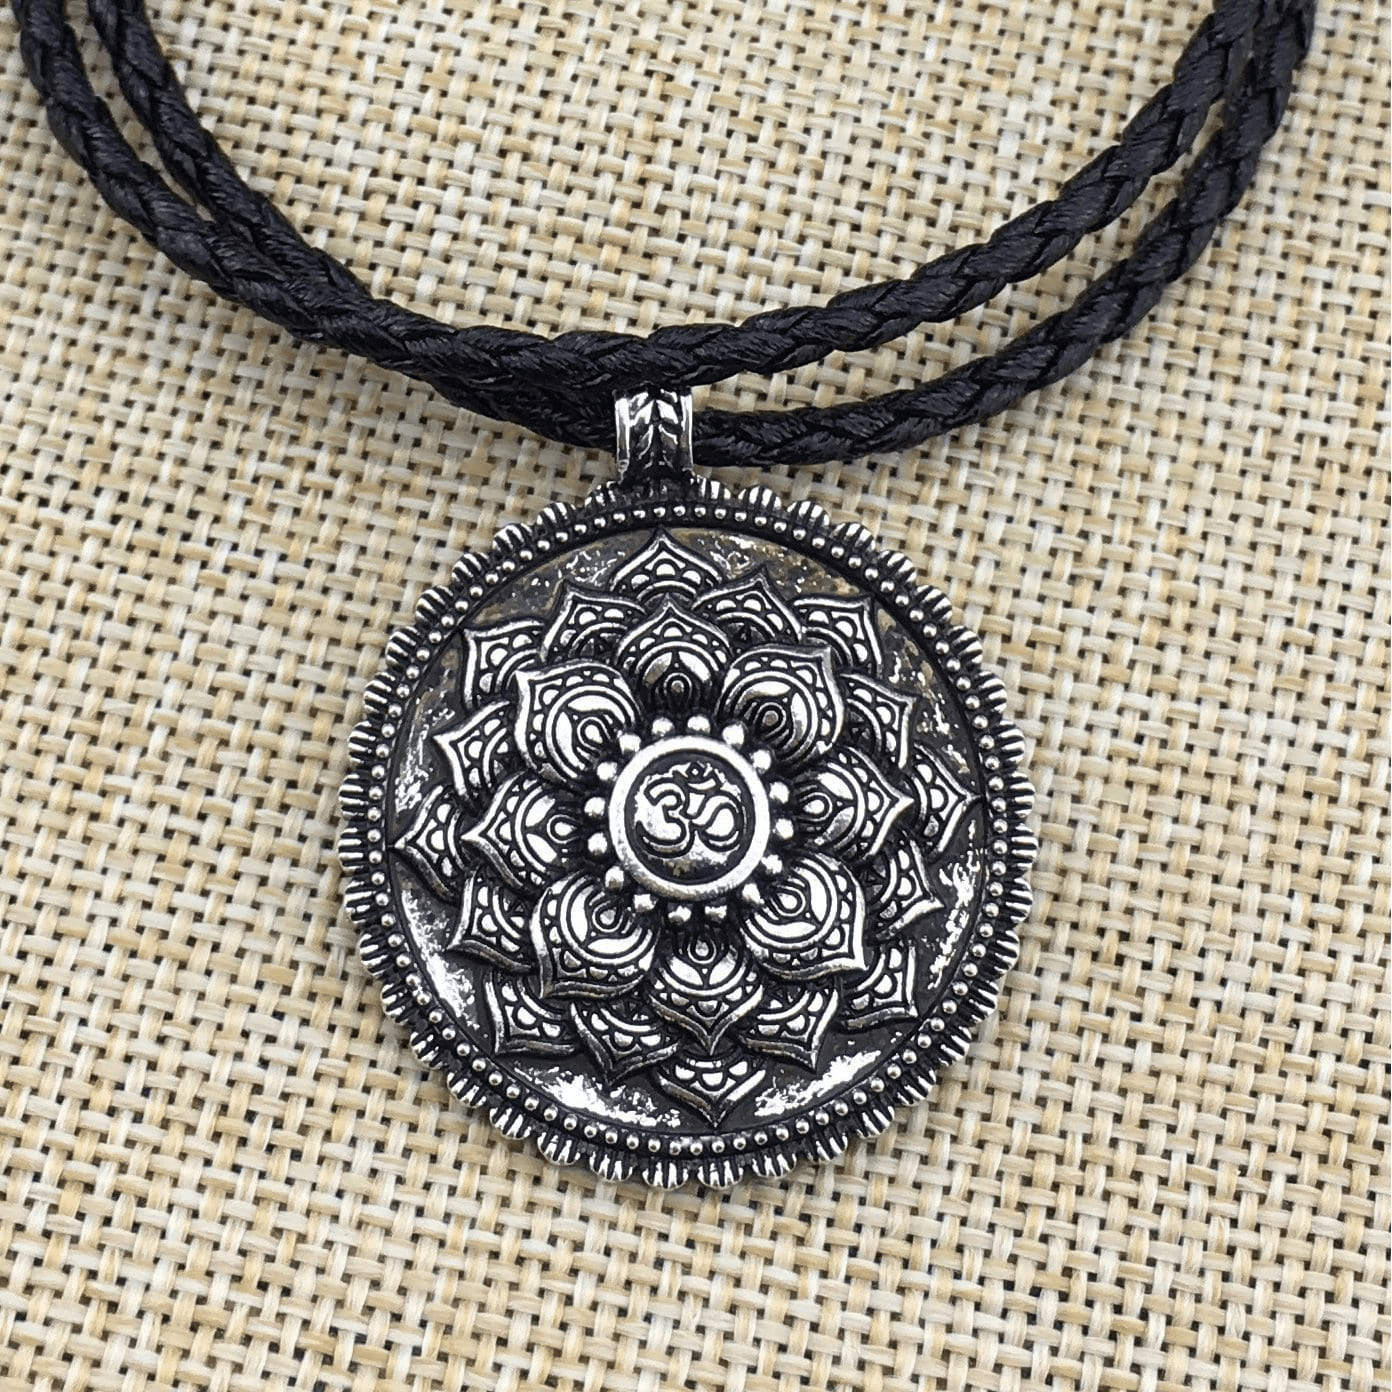 Antique Silver Om Lotus Mandala Pendant Necklace necklace WickedAF